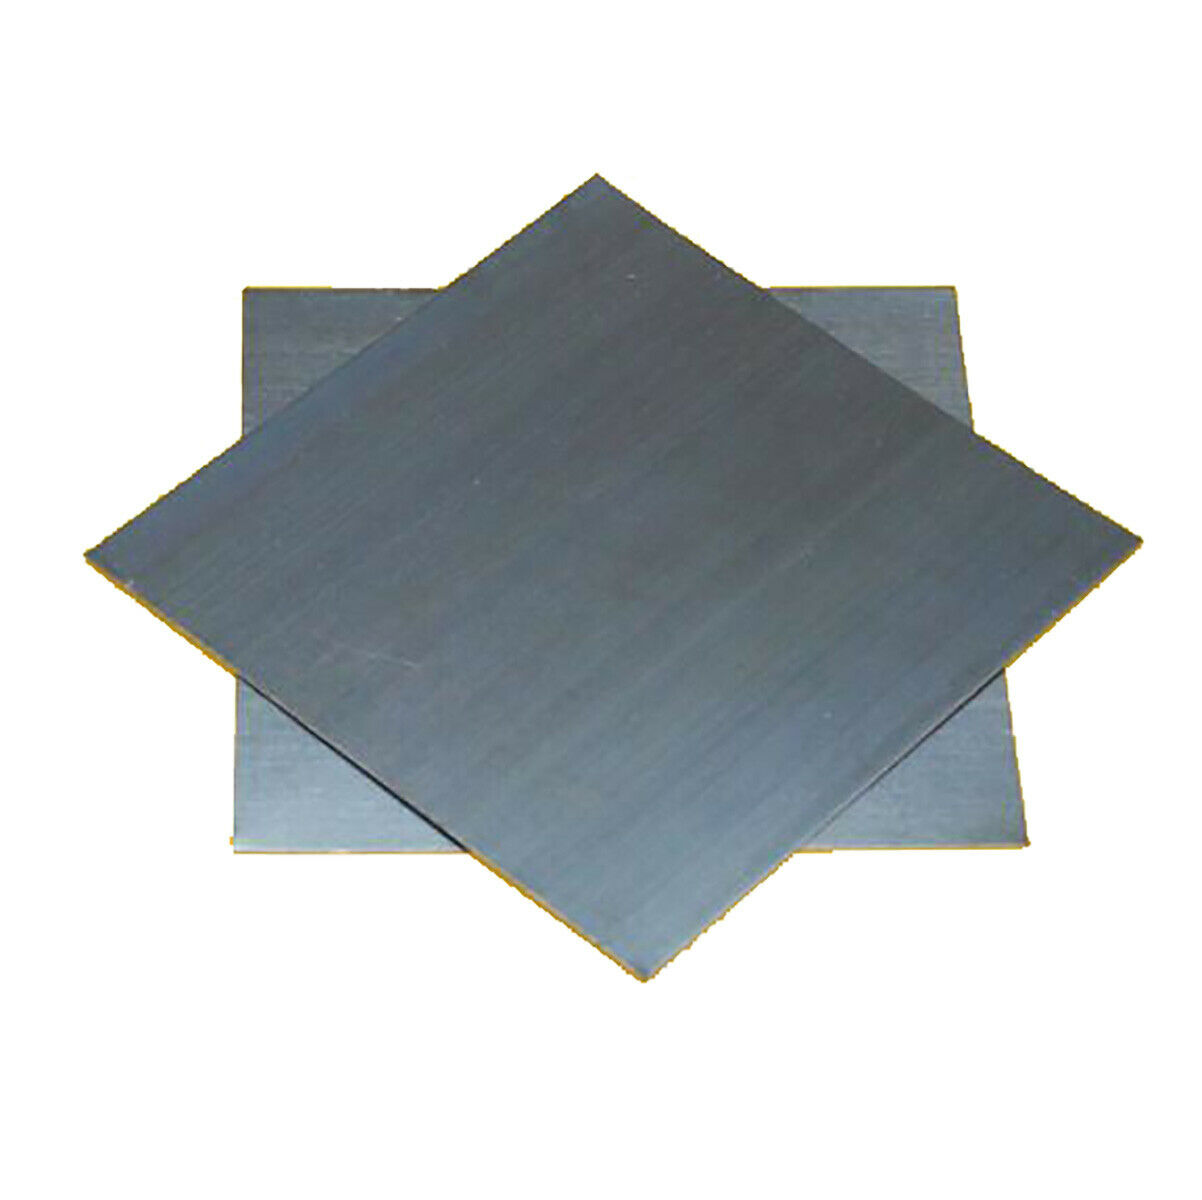 0.1mm-0.8mm Thick Various Sizes Details about  /Phosphor Bronze Sheet Plate Metal Foil Panel